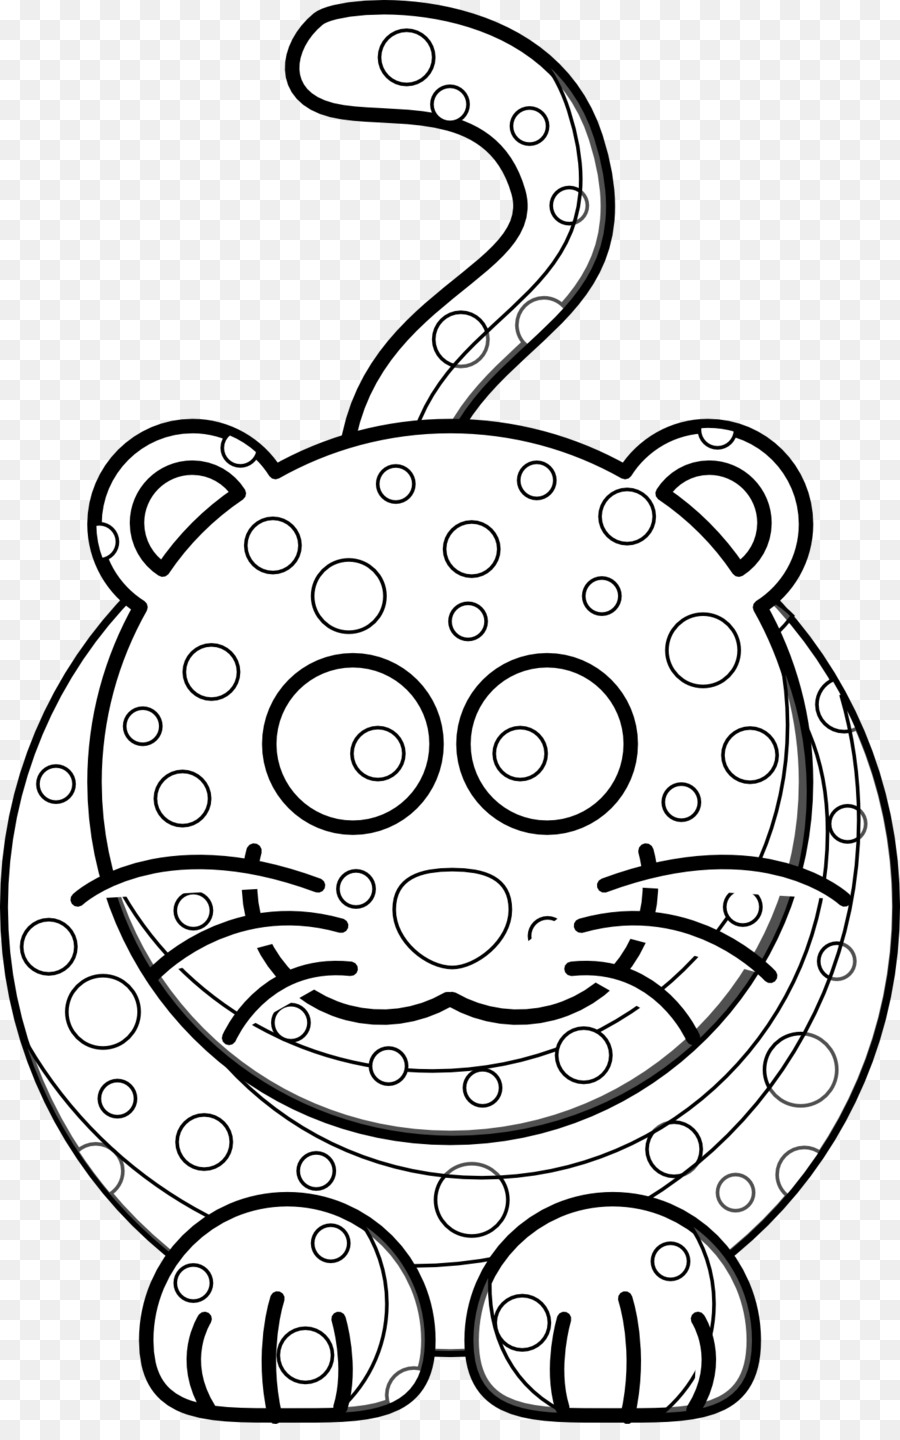 Download Black And White Cartoon Owl Scalable Vector Graphics Svg